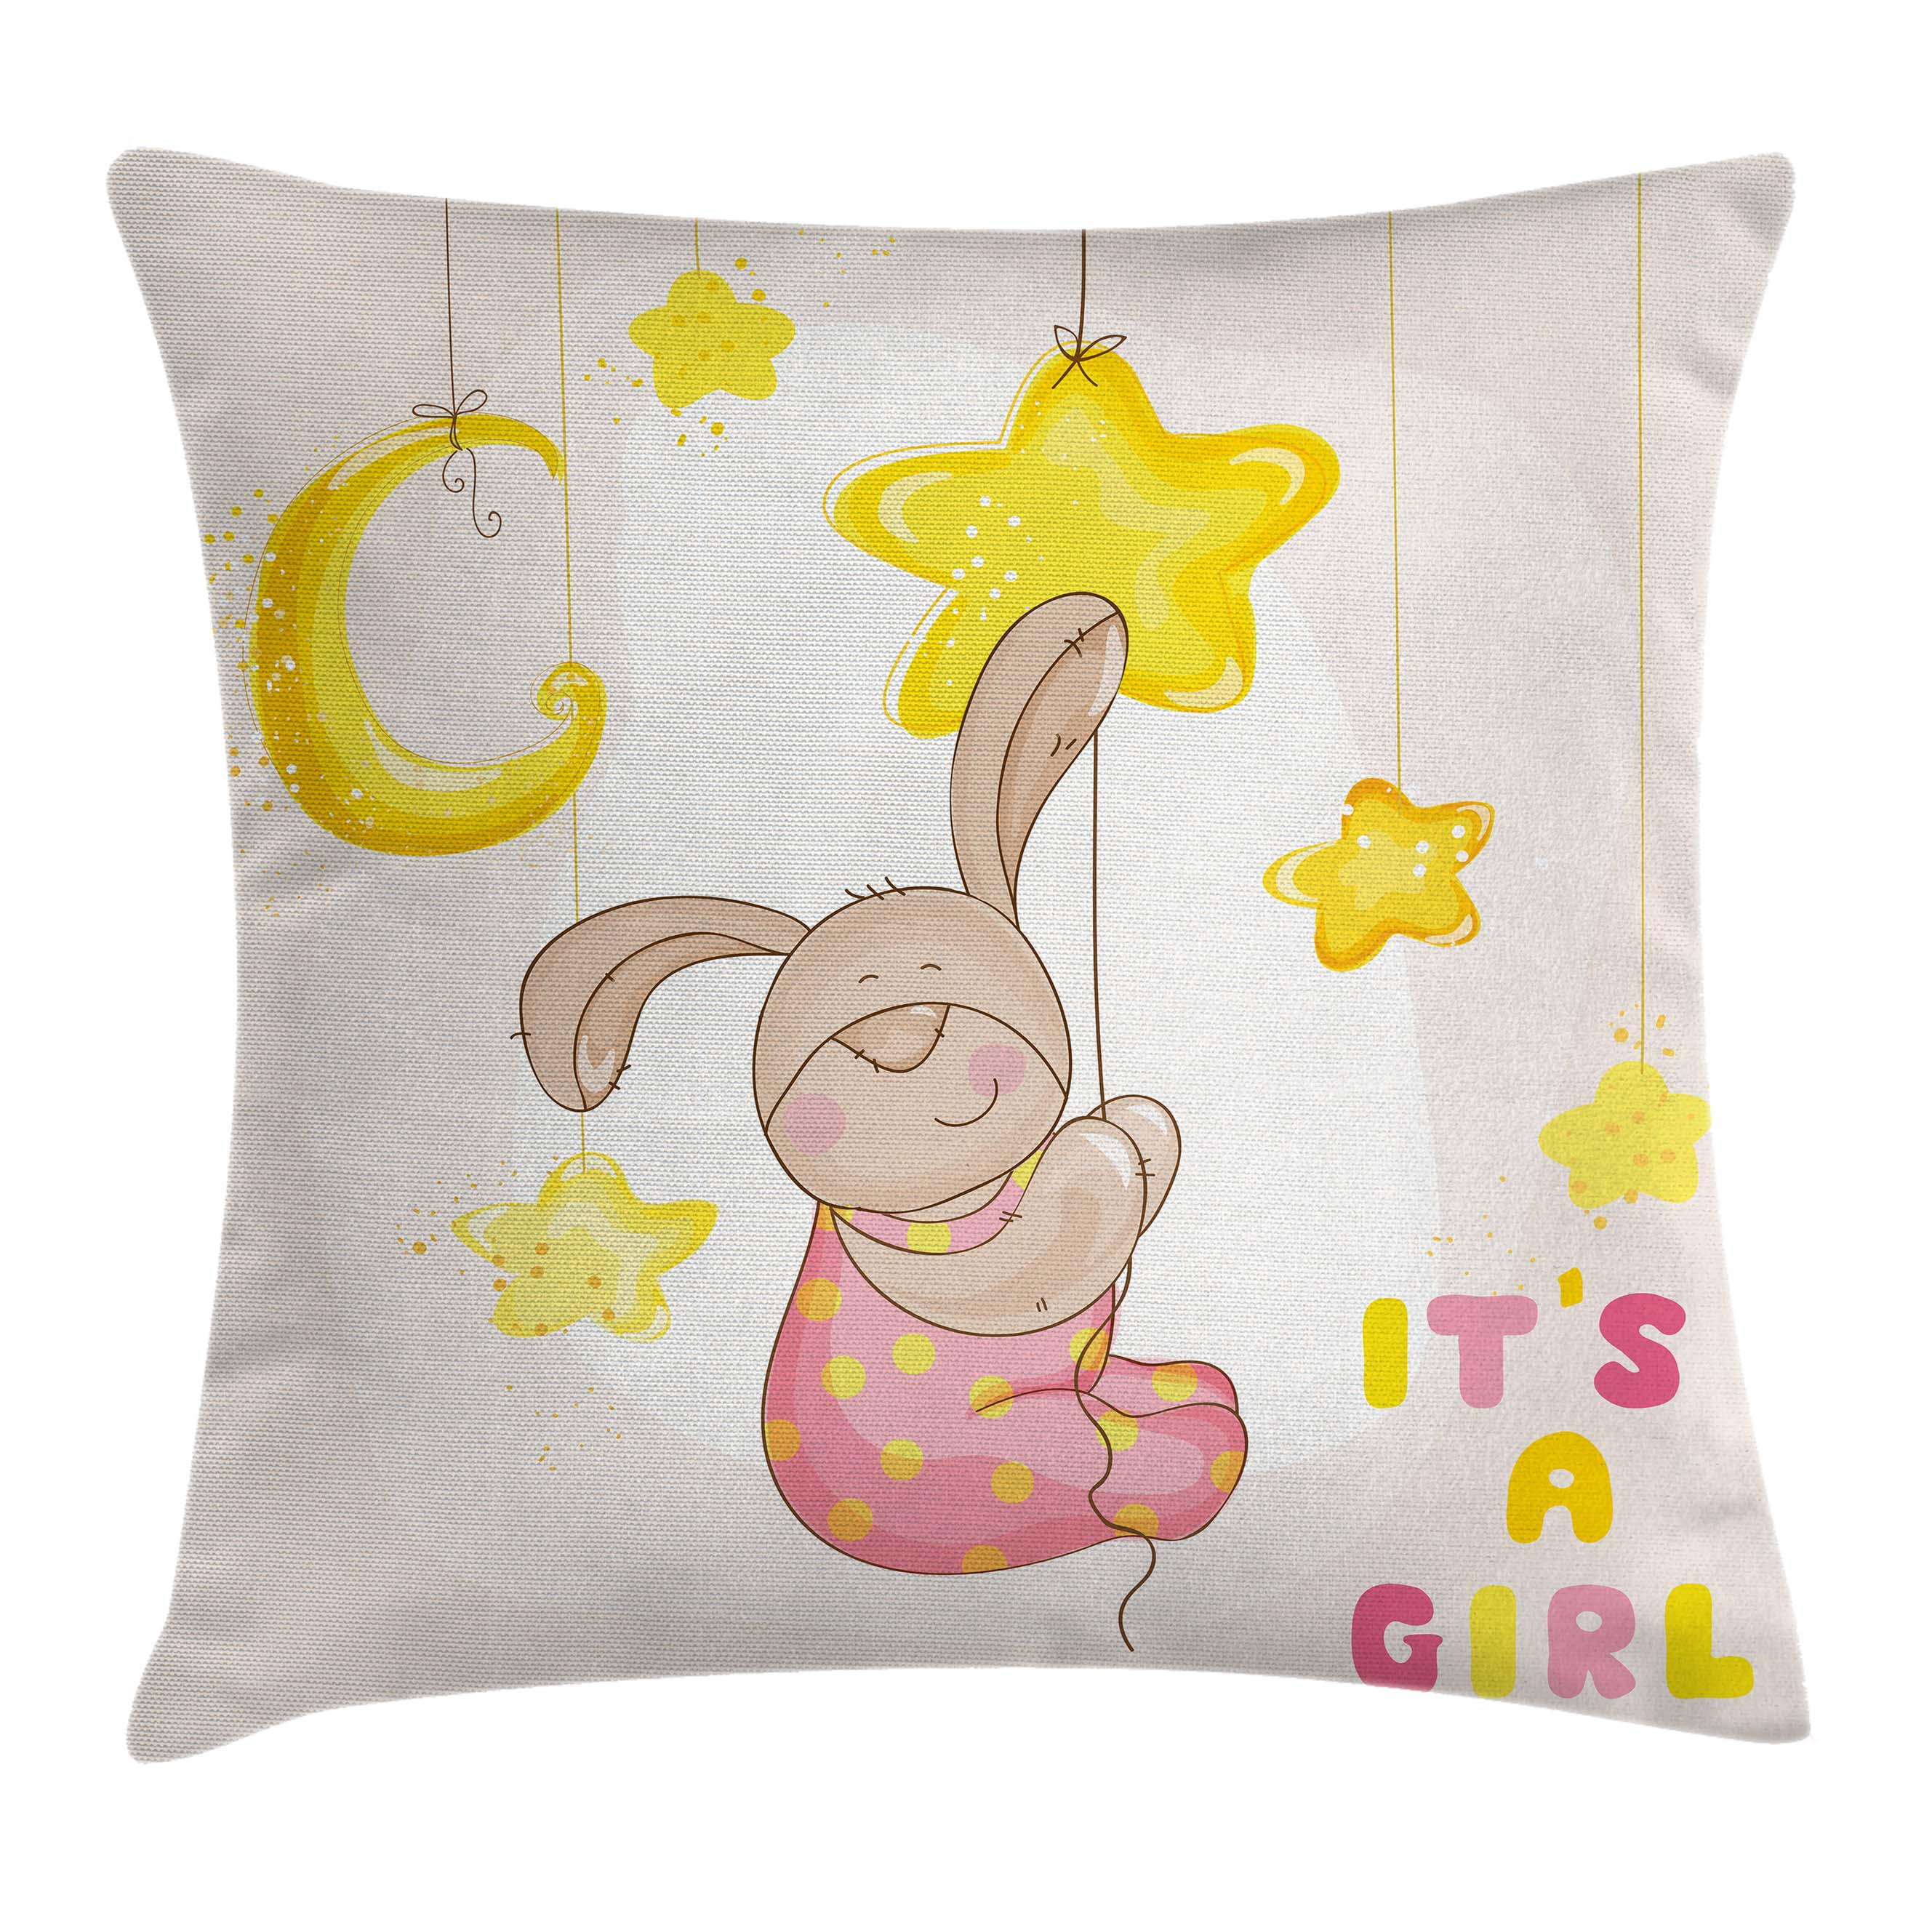 Kids Throw Pillow Cushion Cover, Cartoon Like Cute Baby Bunny Hanging Stars and Moon Polka Dots Cheerful Art, Decorative Square Accent Pillow Case, 16 X 16 Inches, Yellow Tan Light Pink, by Ambesonne